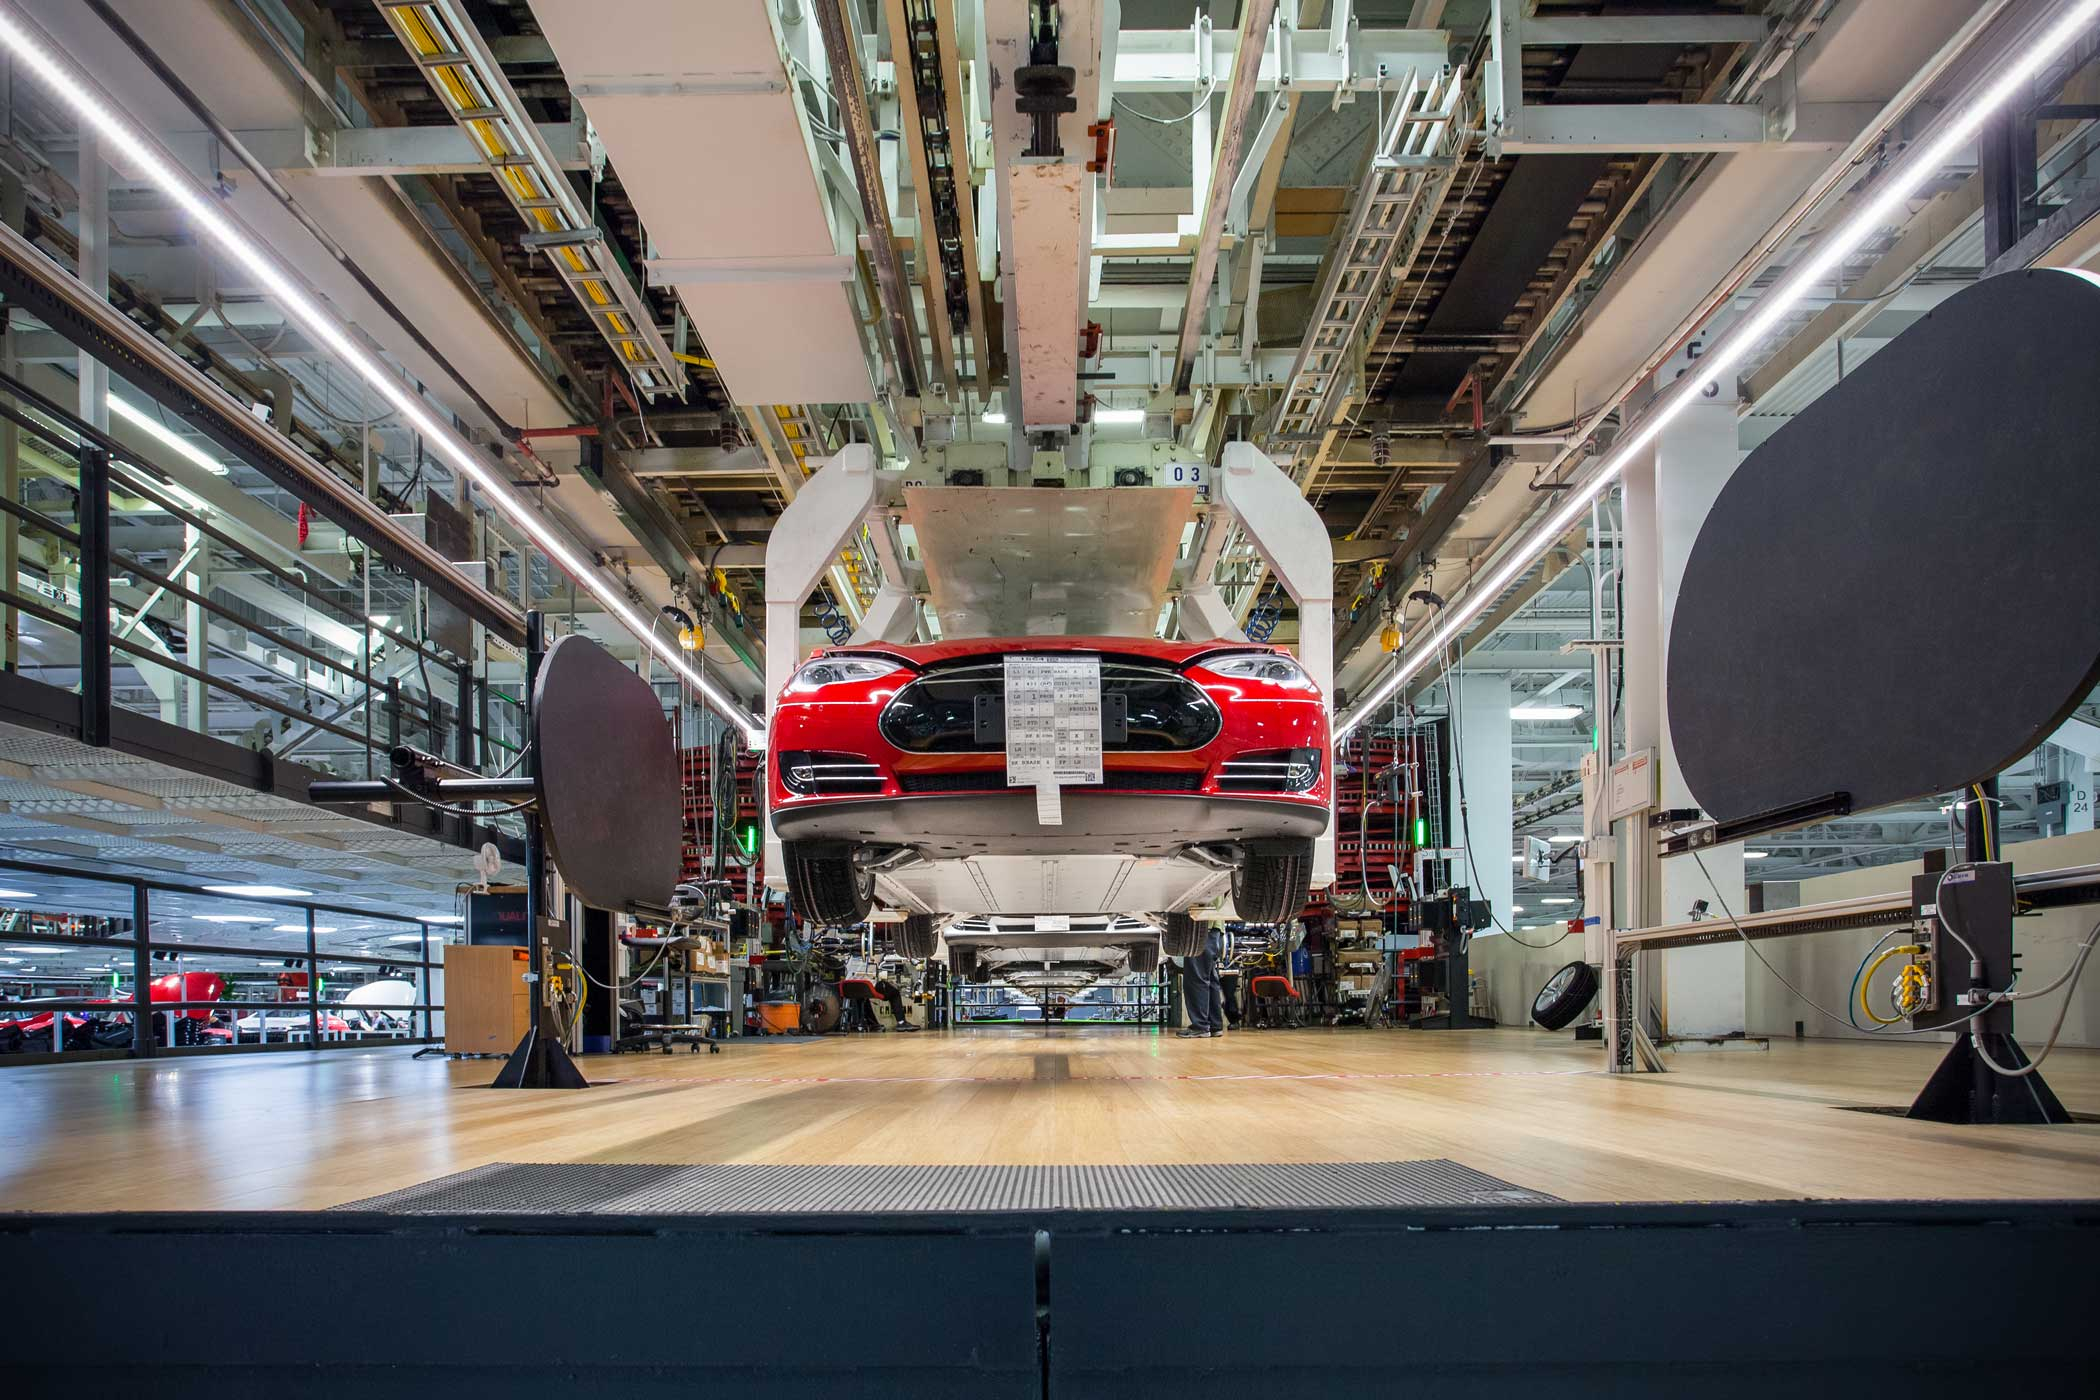 A Model S car on the assembly line at the Tesla Factory in Fremont, Calif.